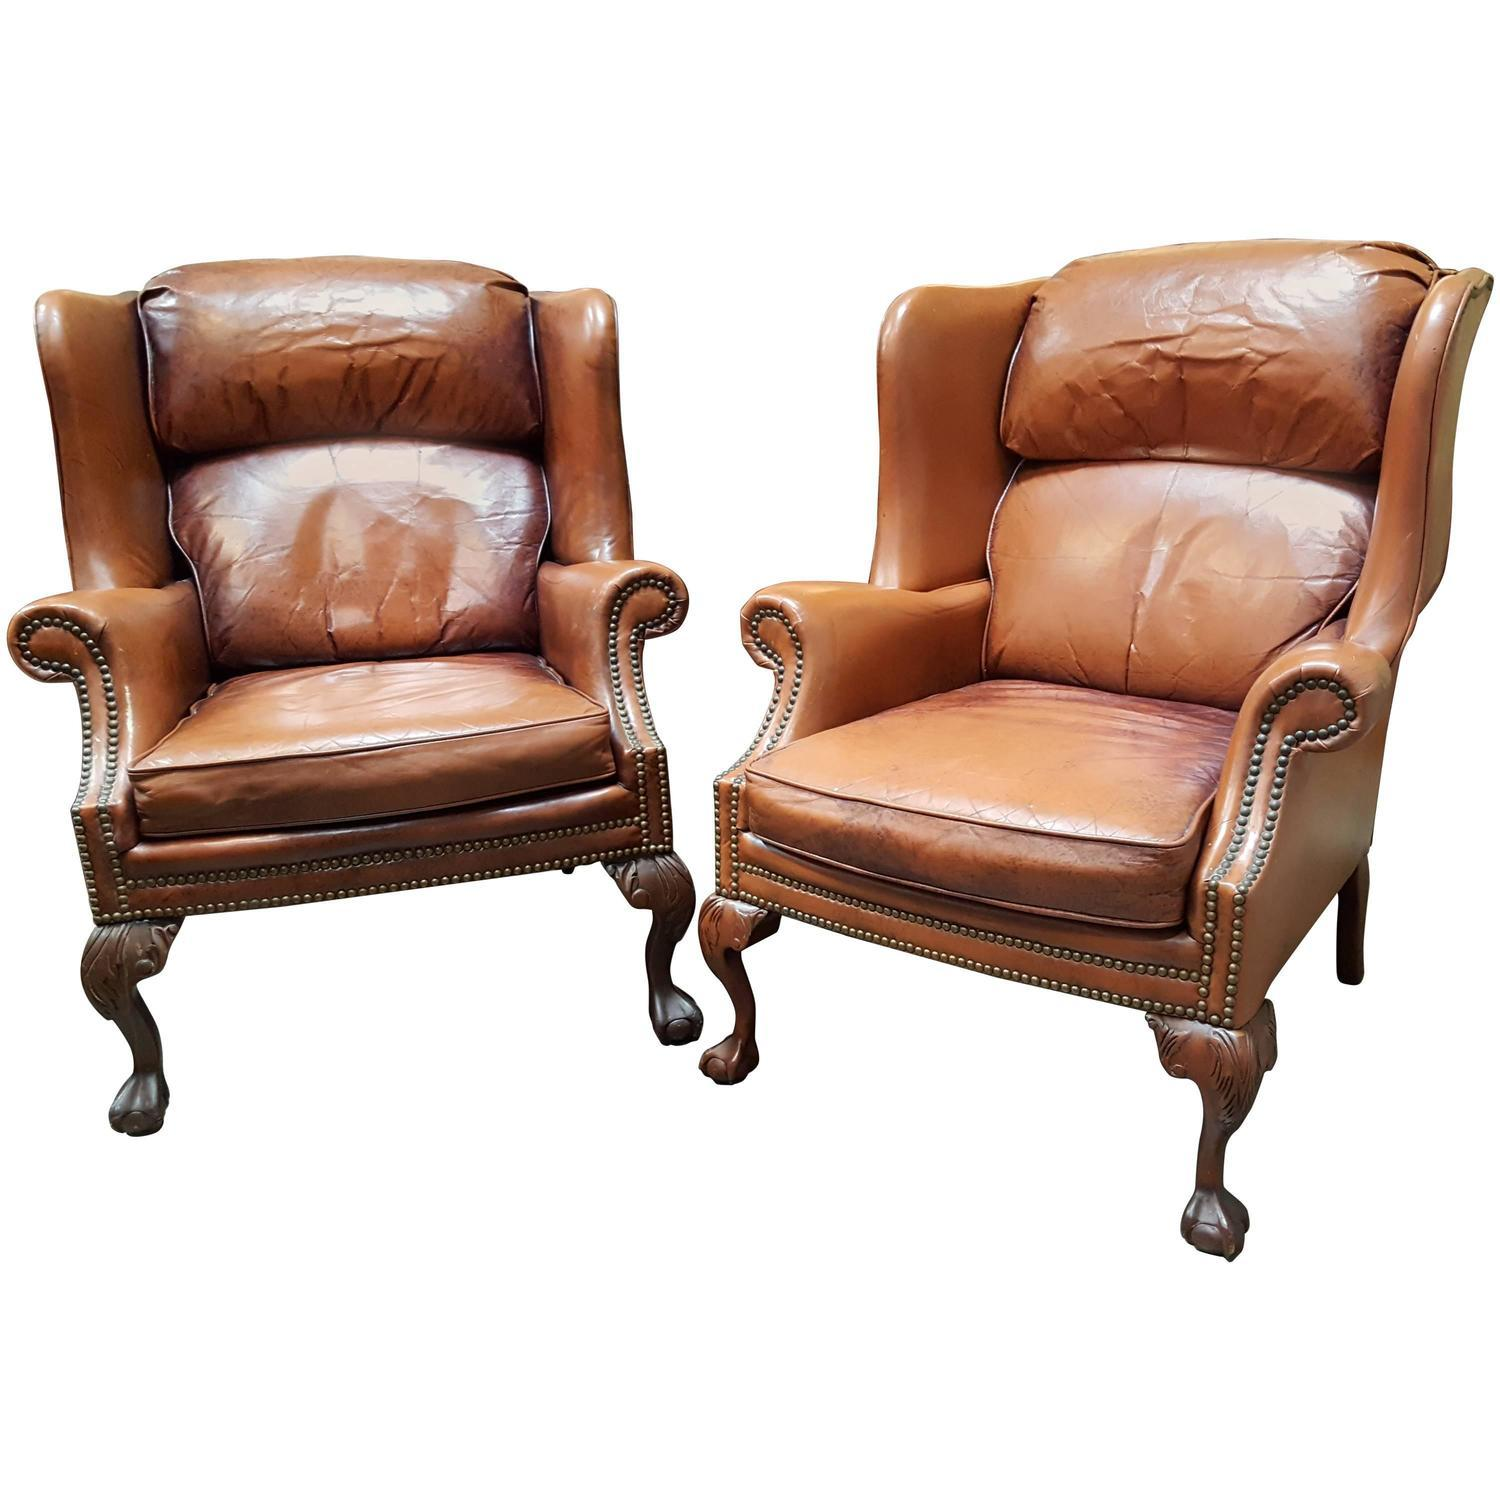 schafer brothers leather wing chairs pair image 1 of 10